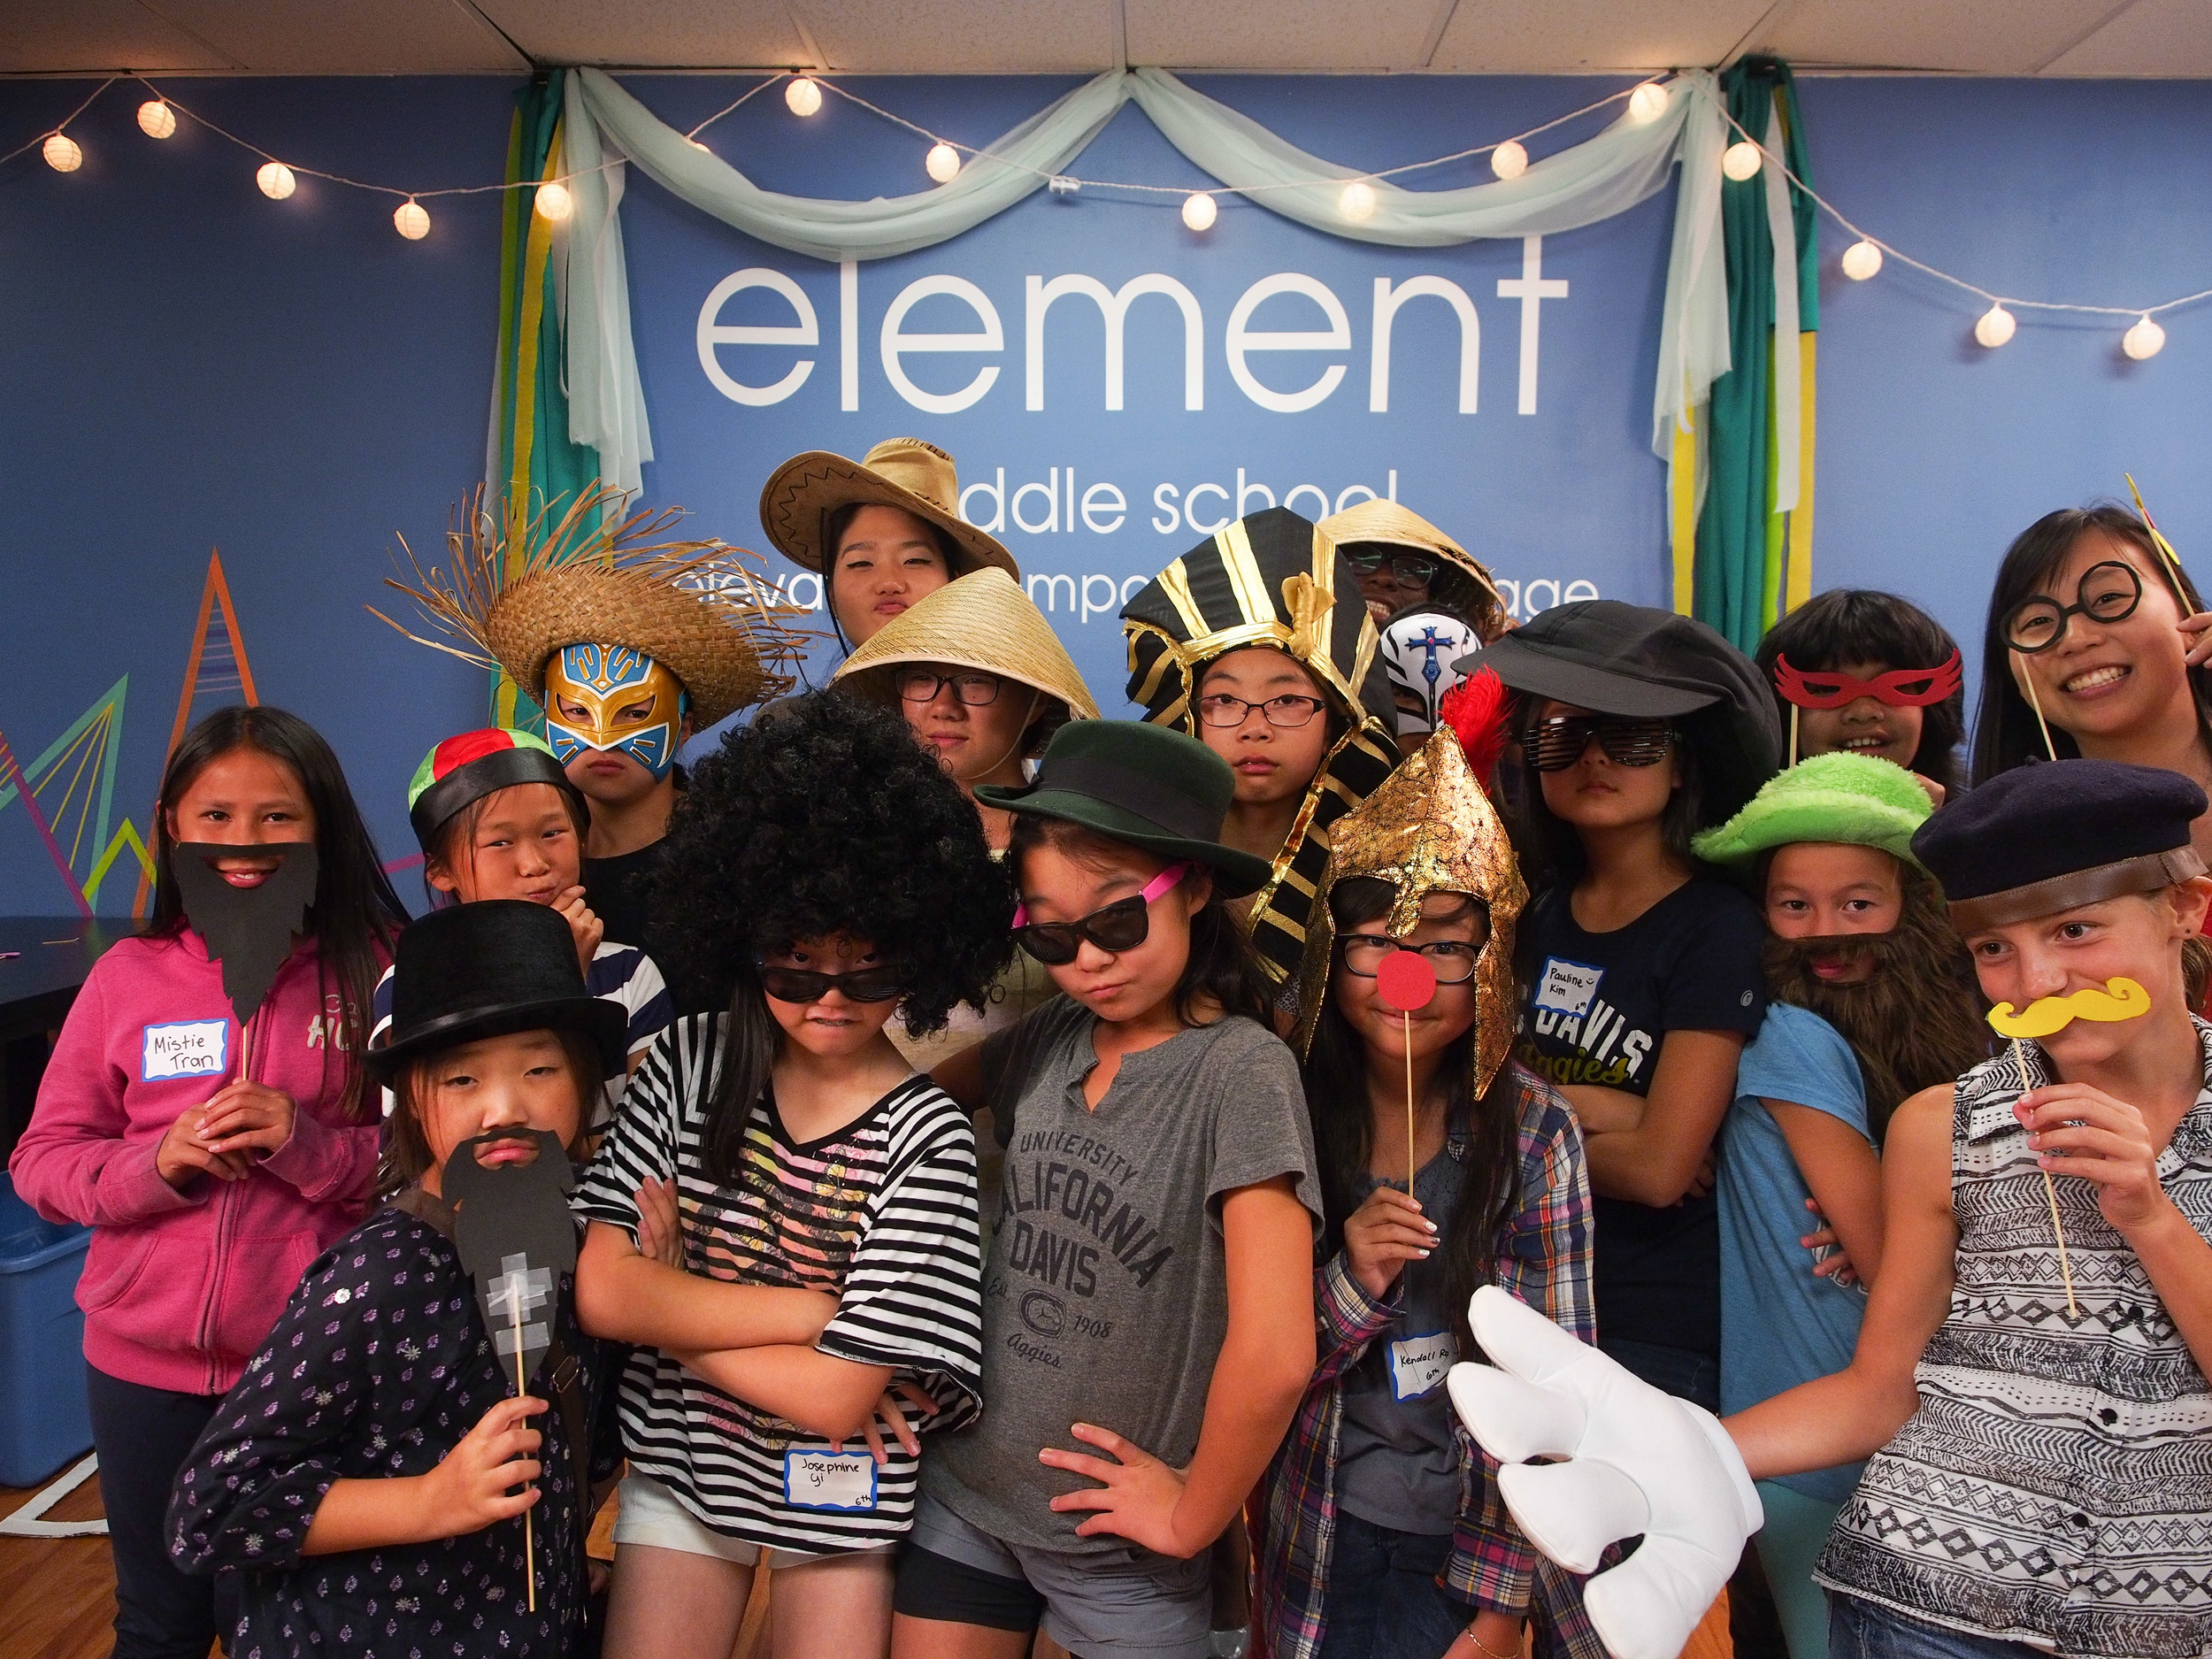 We kicked off the night with a pizza dinner and photobooth time by grade. Although we were initially going to hold a competition for the most creative, most epic, and most silliest picture, all sense of greater purpose clearly dissolved the moment people saw the props.